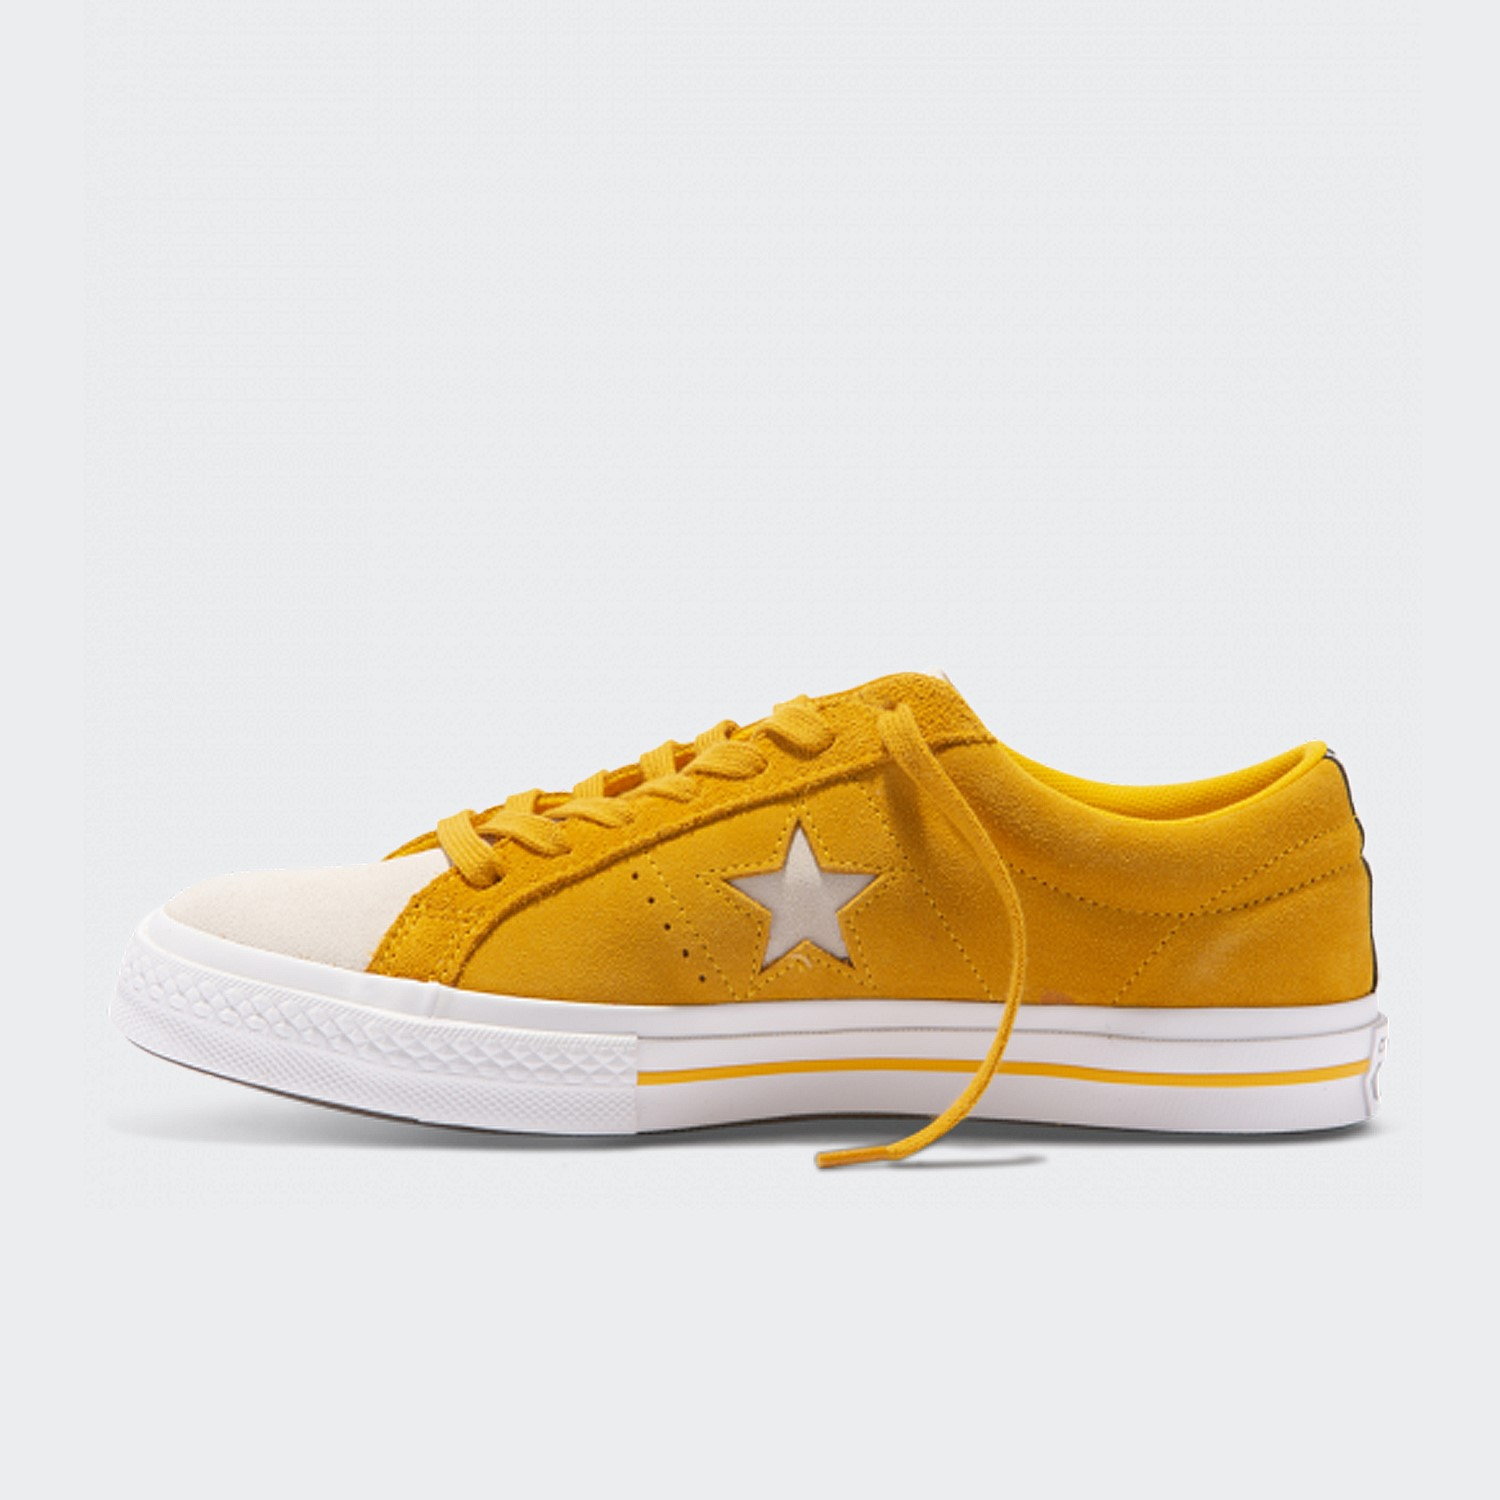 94eb90c1f195 Shop All - One Star Woven Era Low Unisex